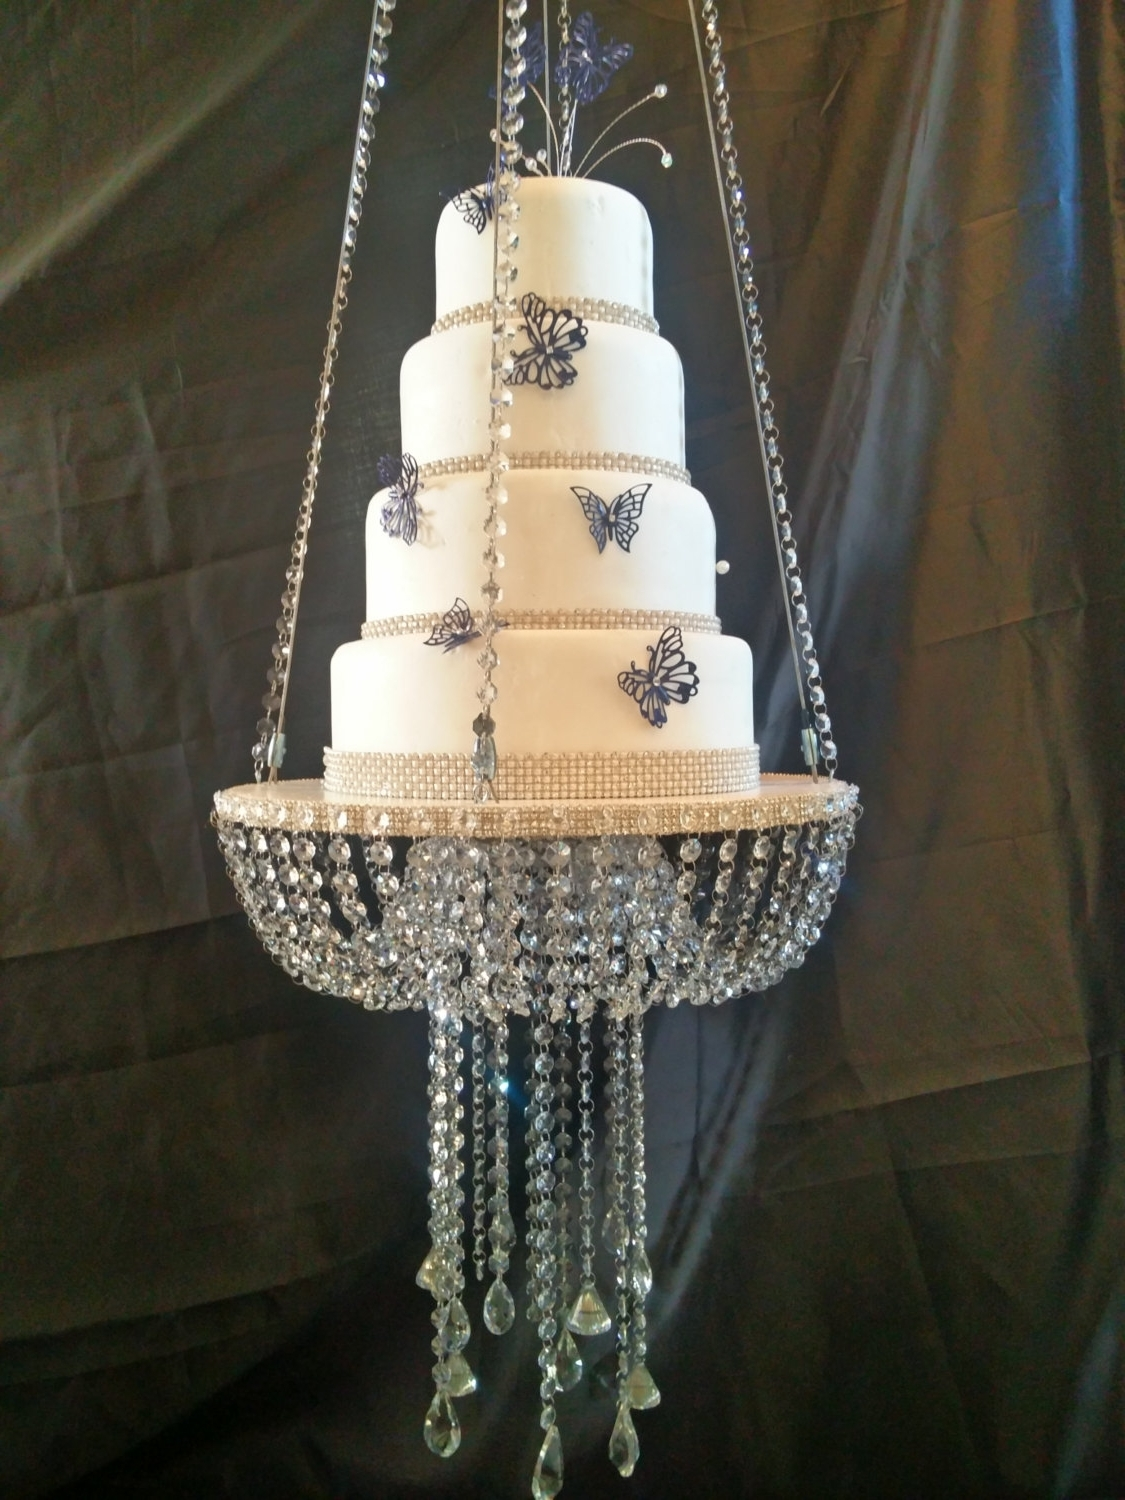 Newest Chandelier: Astonishing Faux Crystal Chandeliers Party Chandelier Within Faux Crystal Chandeliers (View 14 of 20)